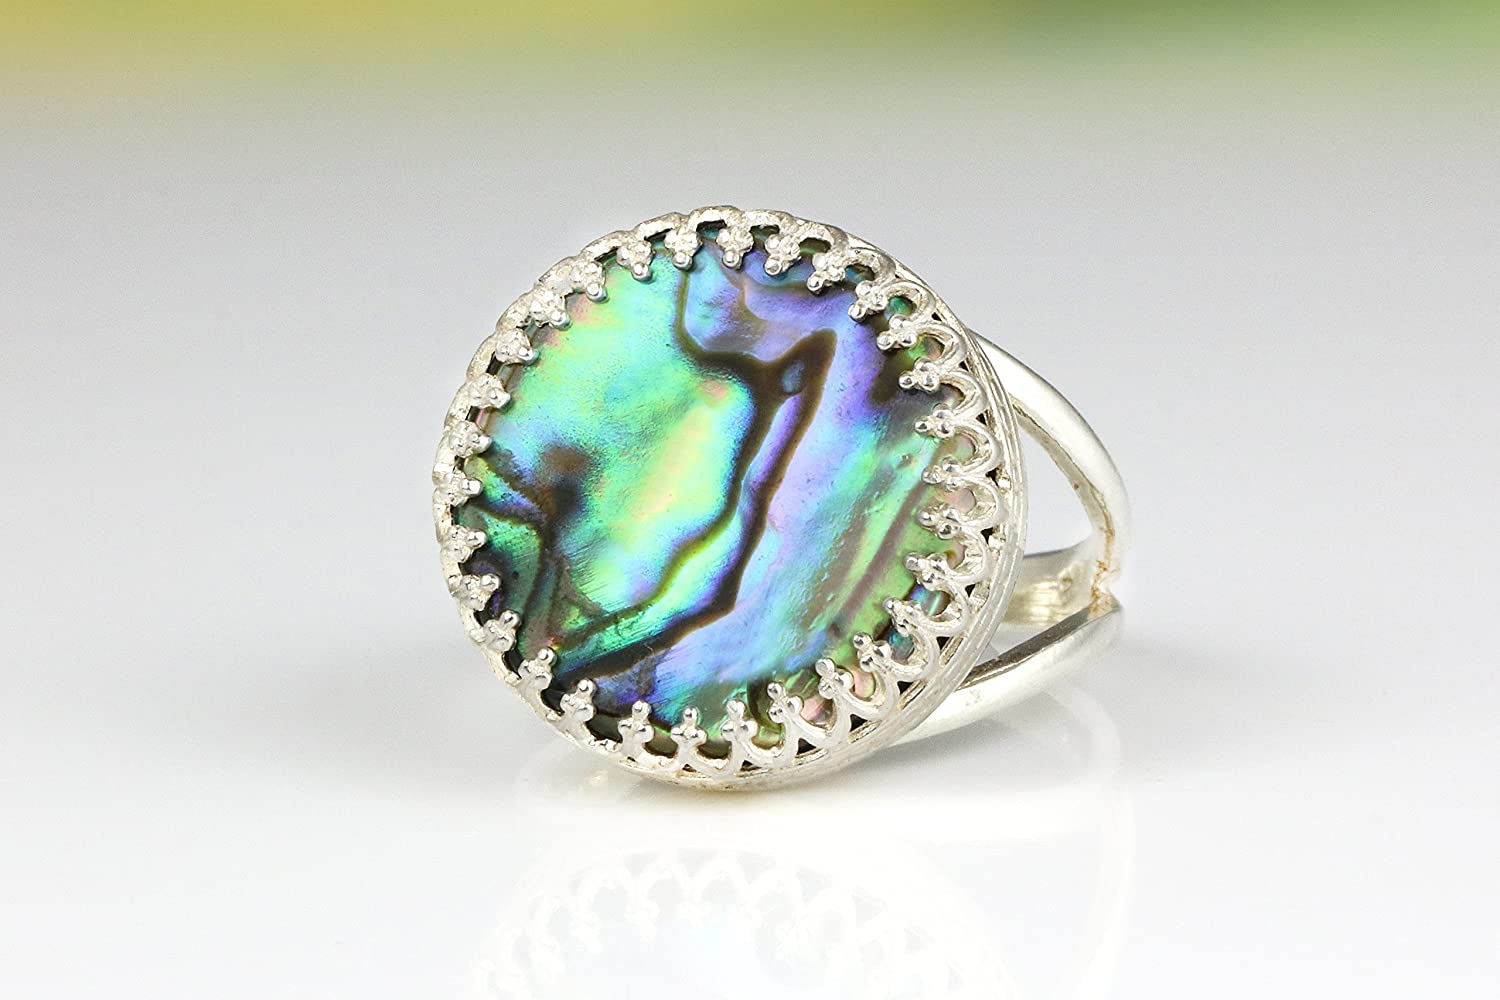 Abalone ring,shell ring,silver ring,double band ring,pearl ring,solitaire ring,stack ring,gemstone ring